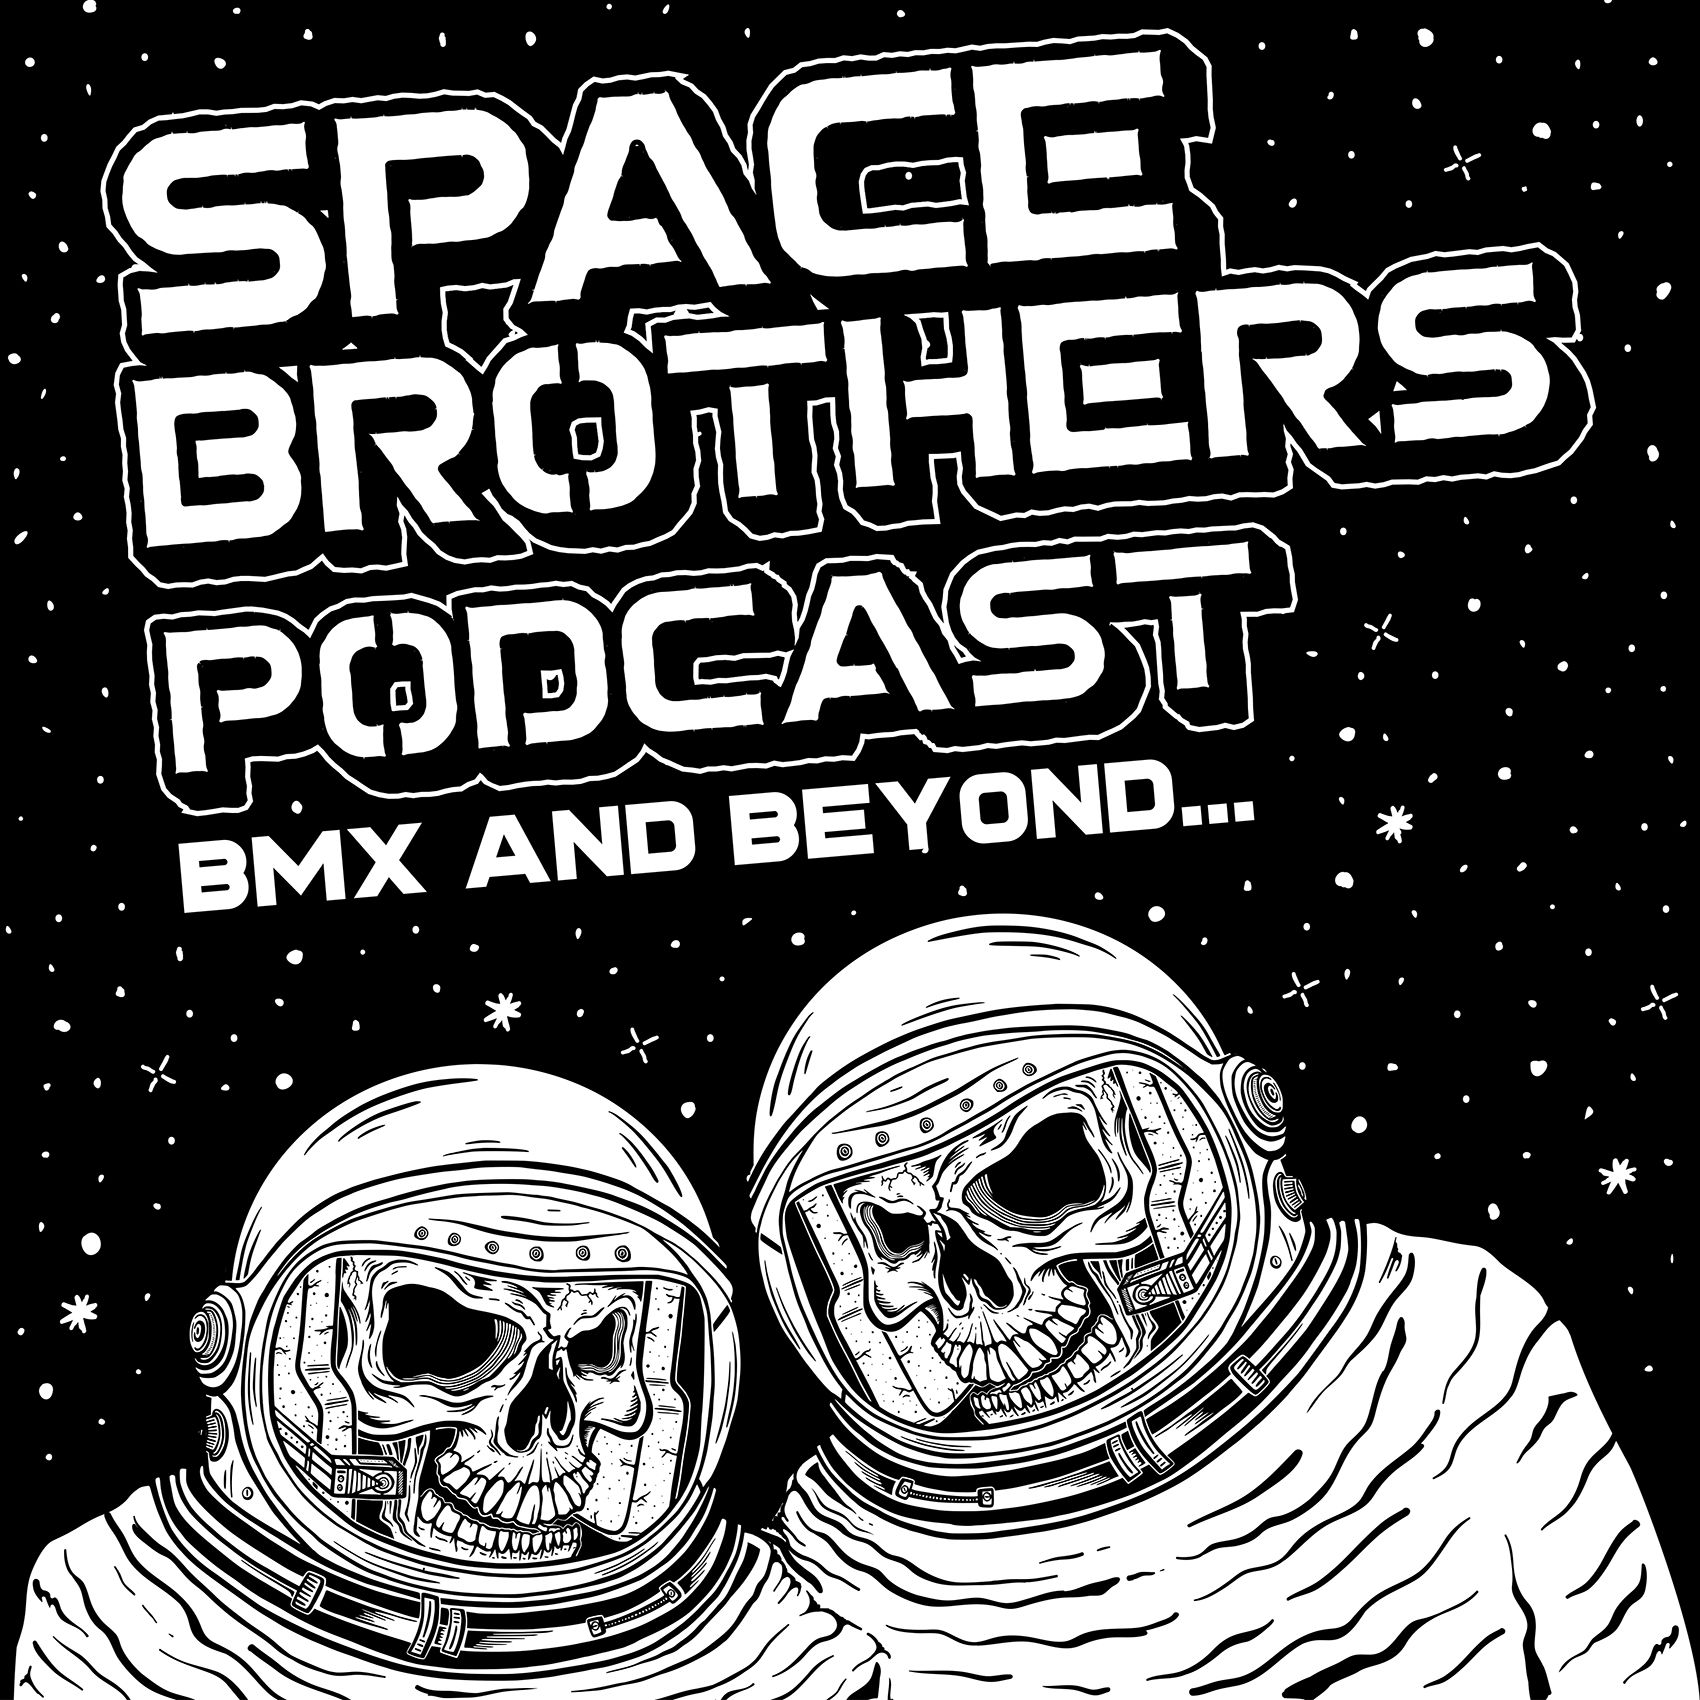 Episode 11 - X Games Shakedown – Space Brothers Podcast